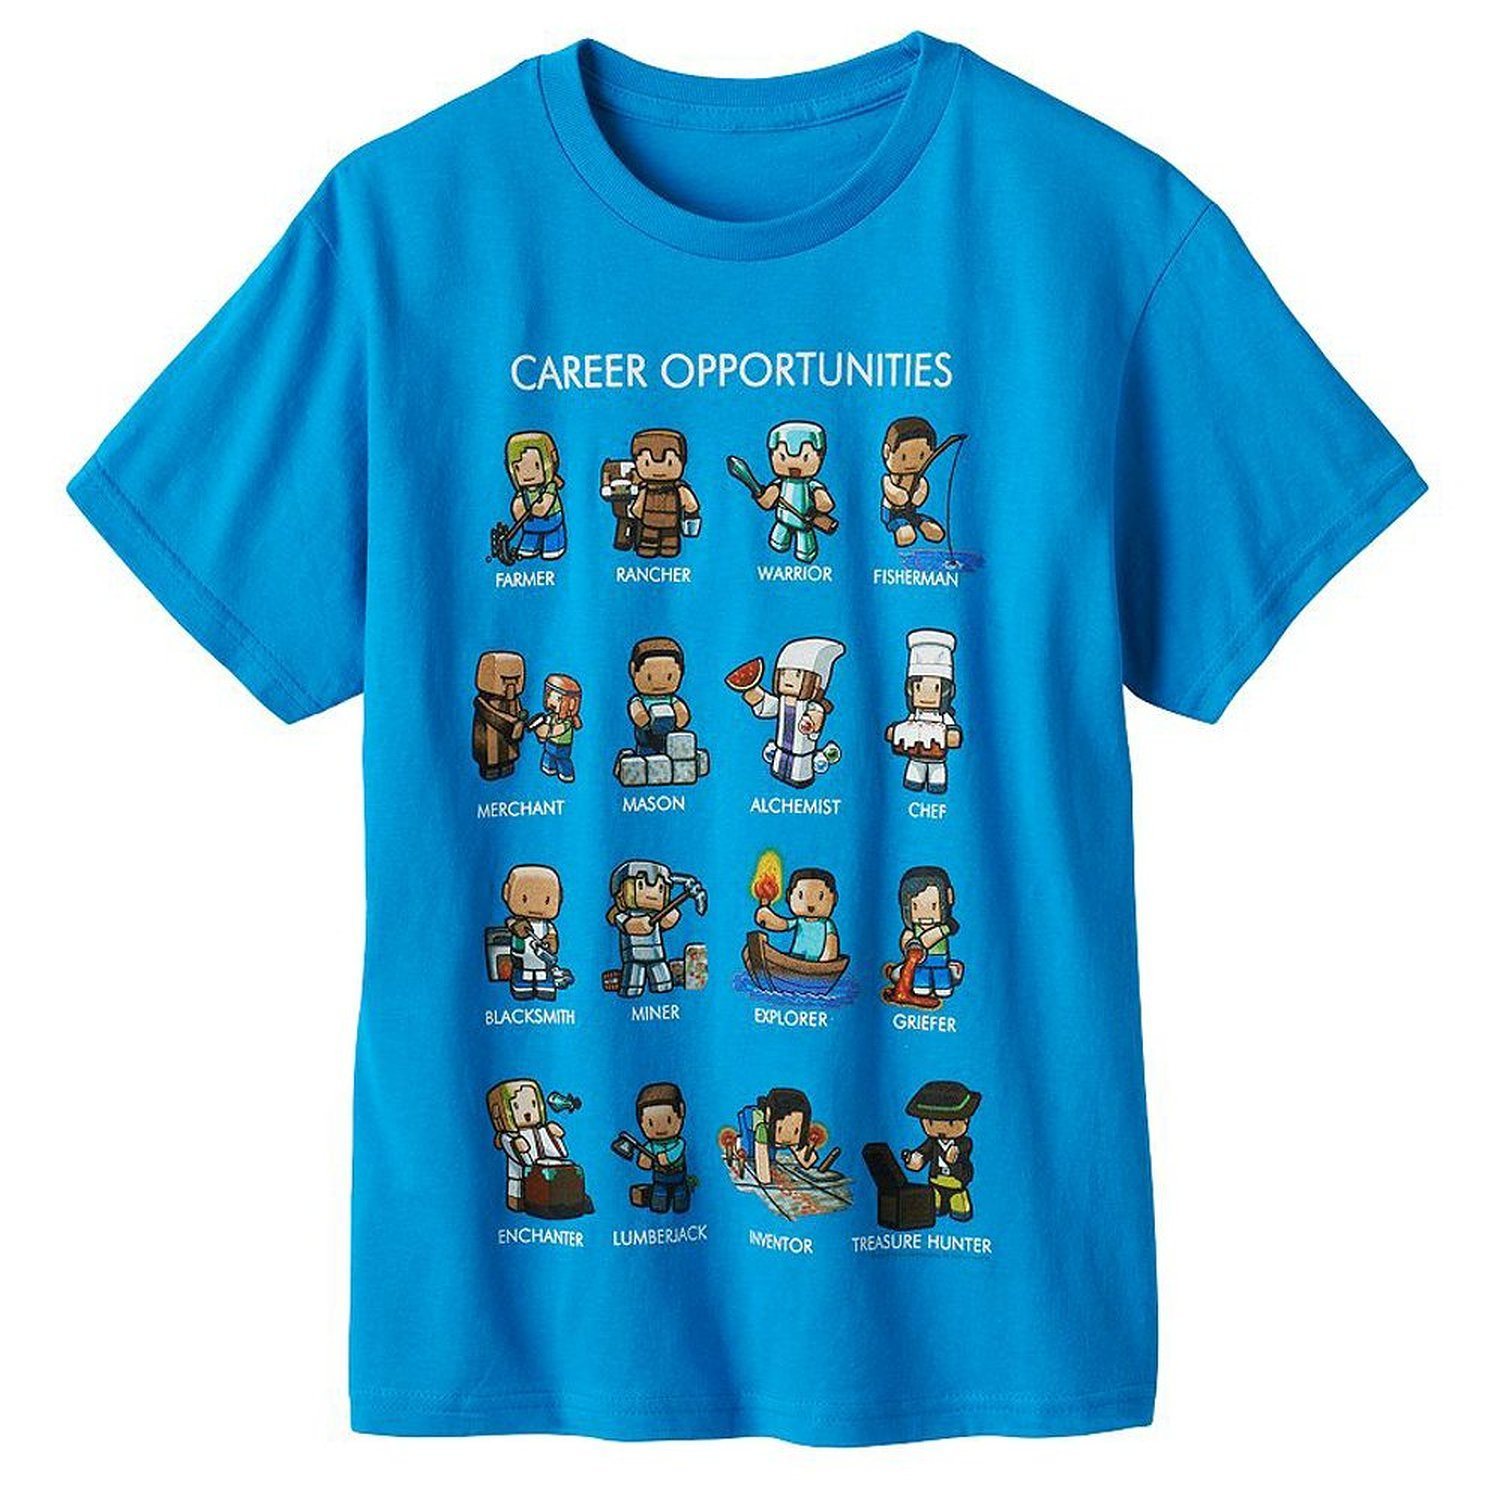 Minecraft Turquoise Career Opportunities T-shirt: Amazon.co.uk ...